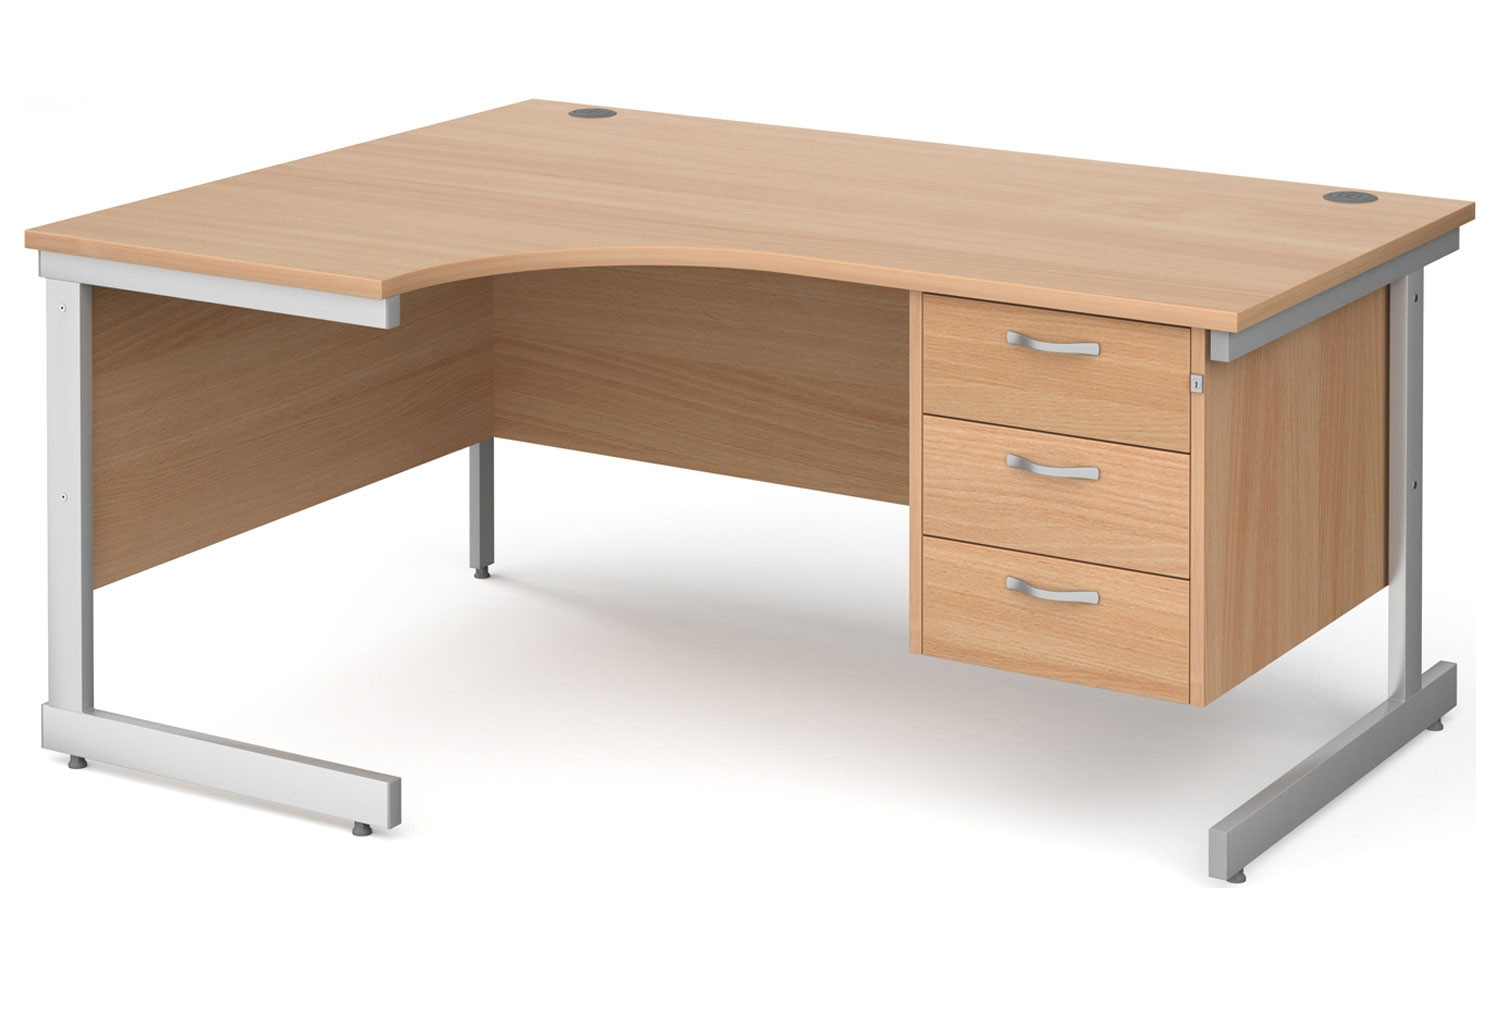 Next-Day Tully I Left Hand Ergonomic Desk 3 Drawers